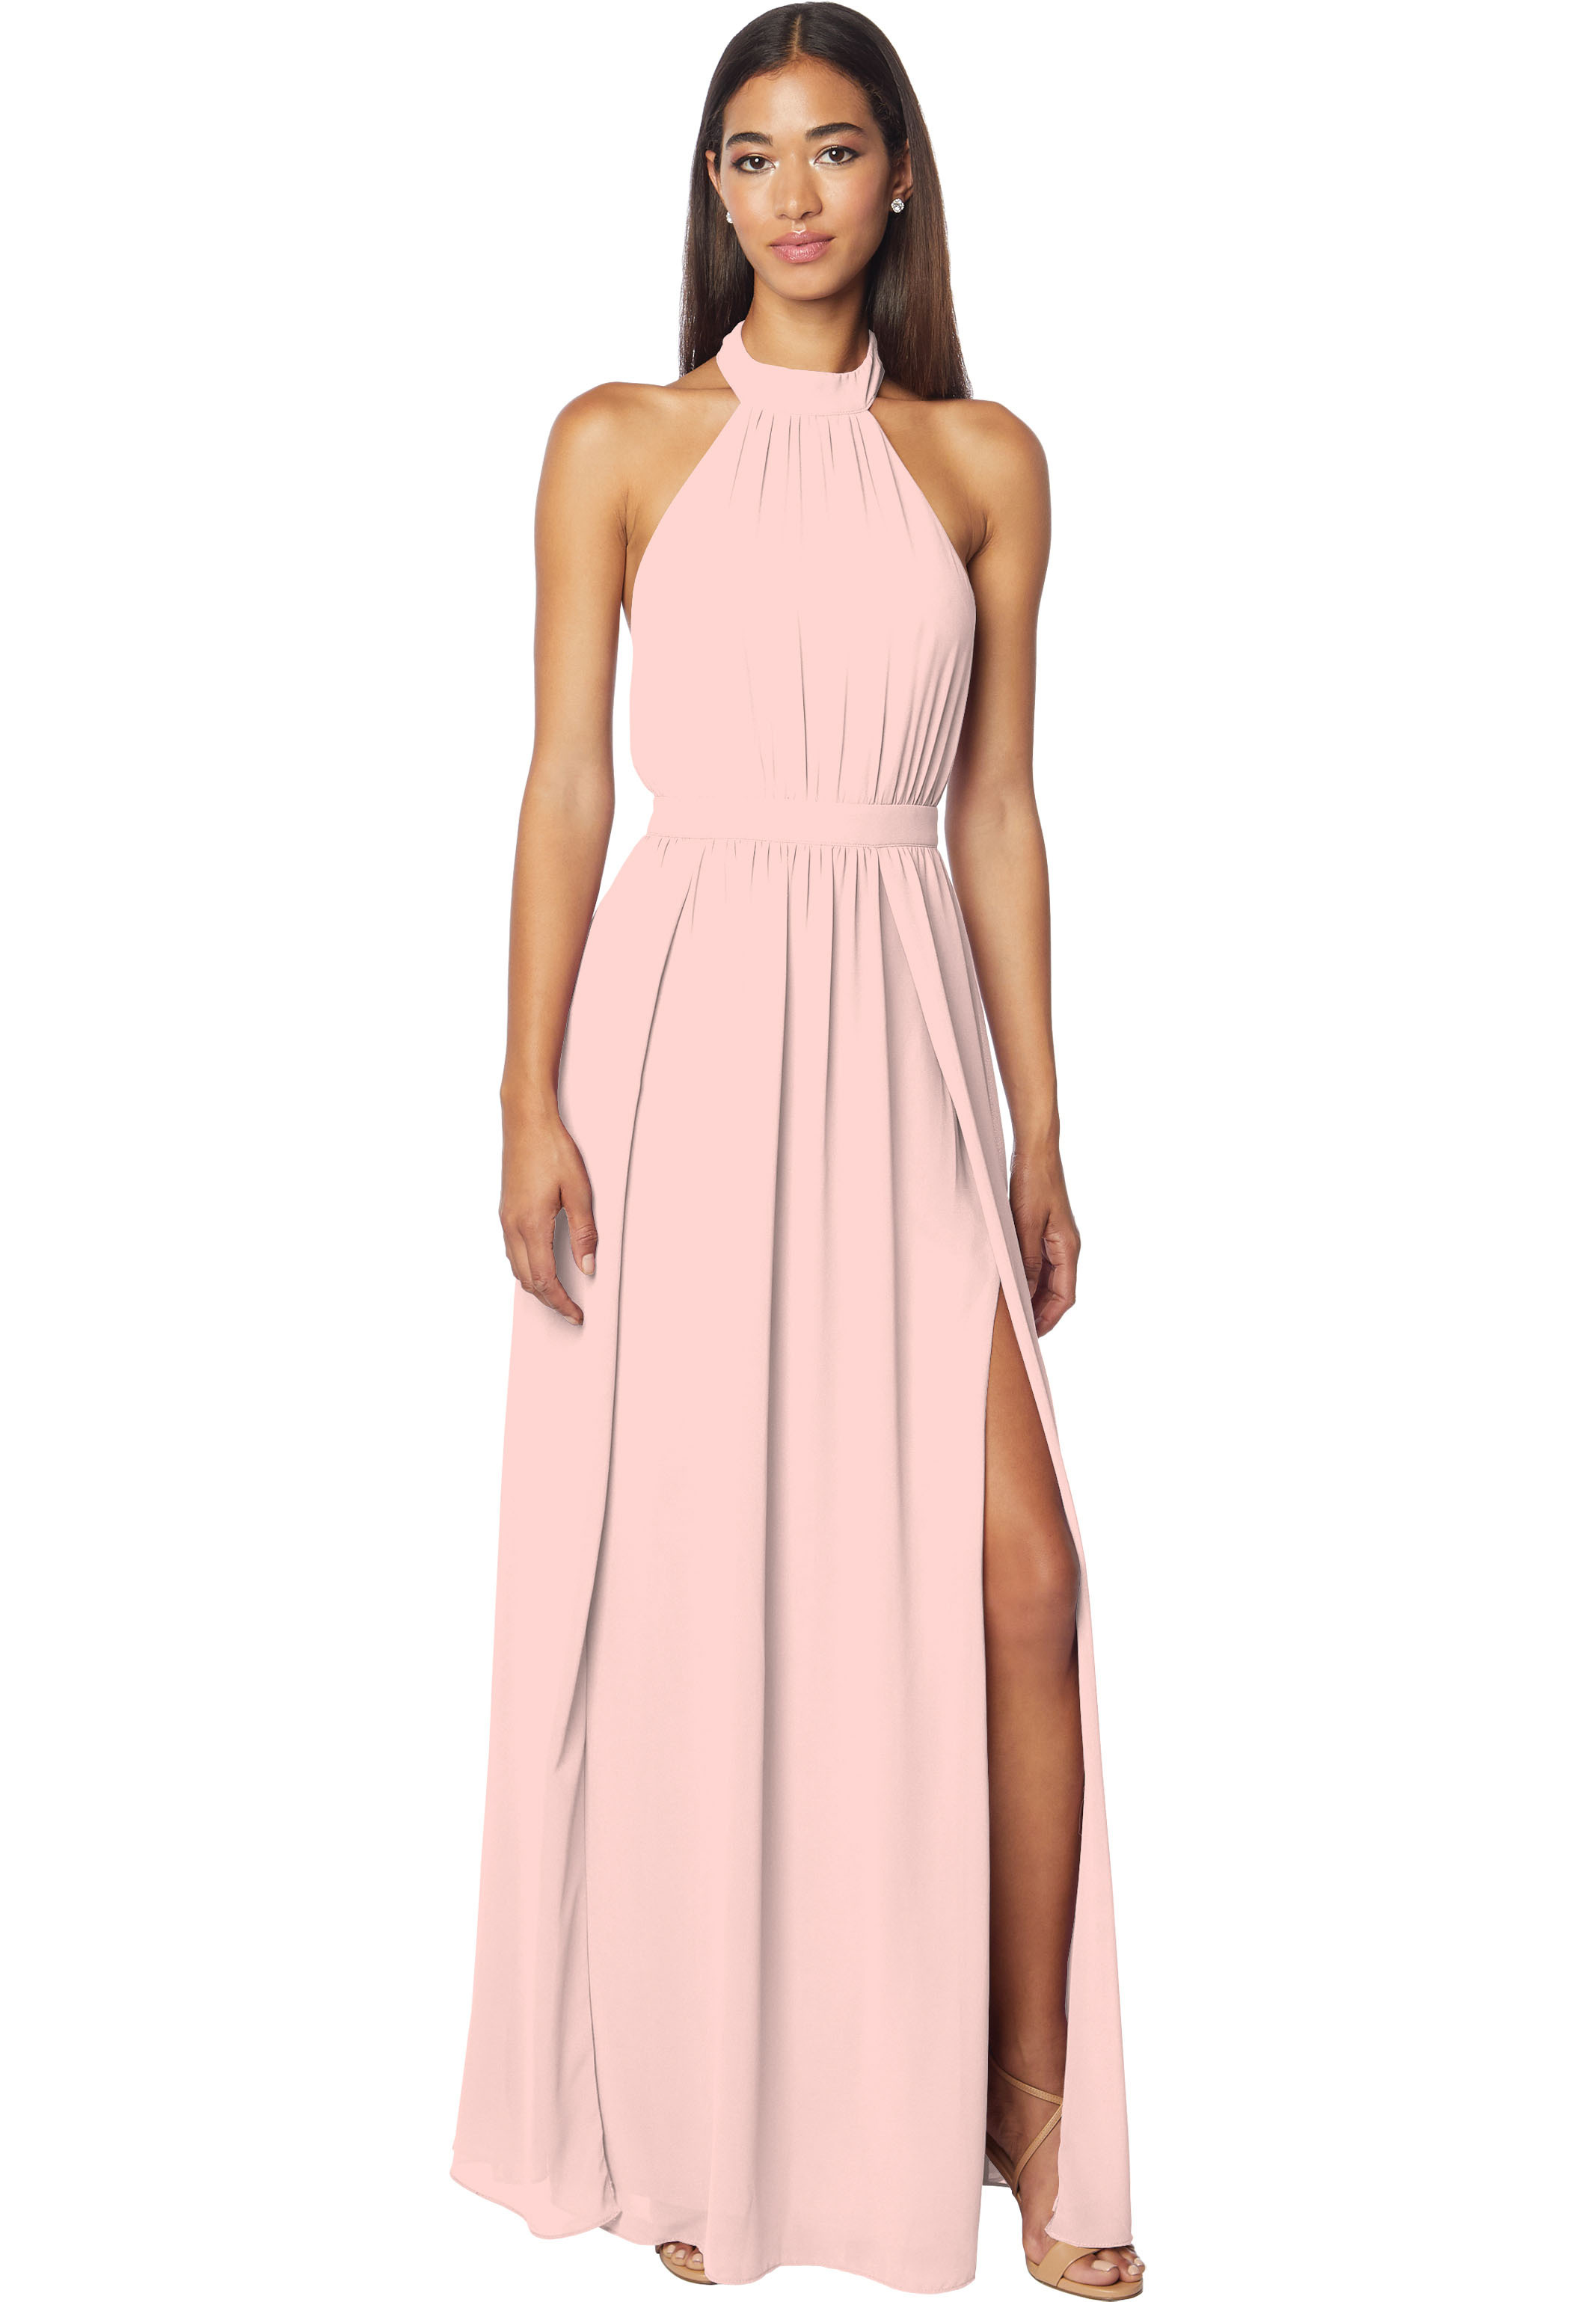 Bill Levkoff FROST ROSE Chiffon Halter A-line gown, $178.00 Front